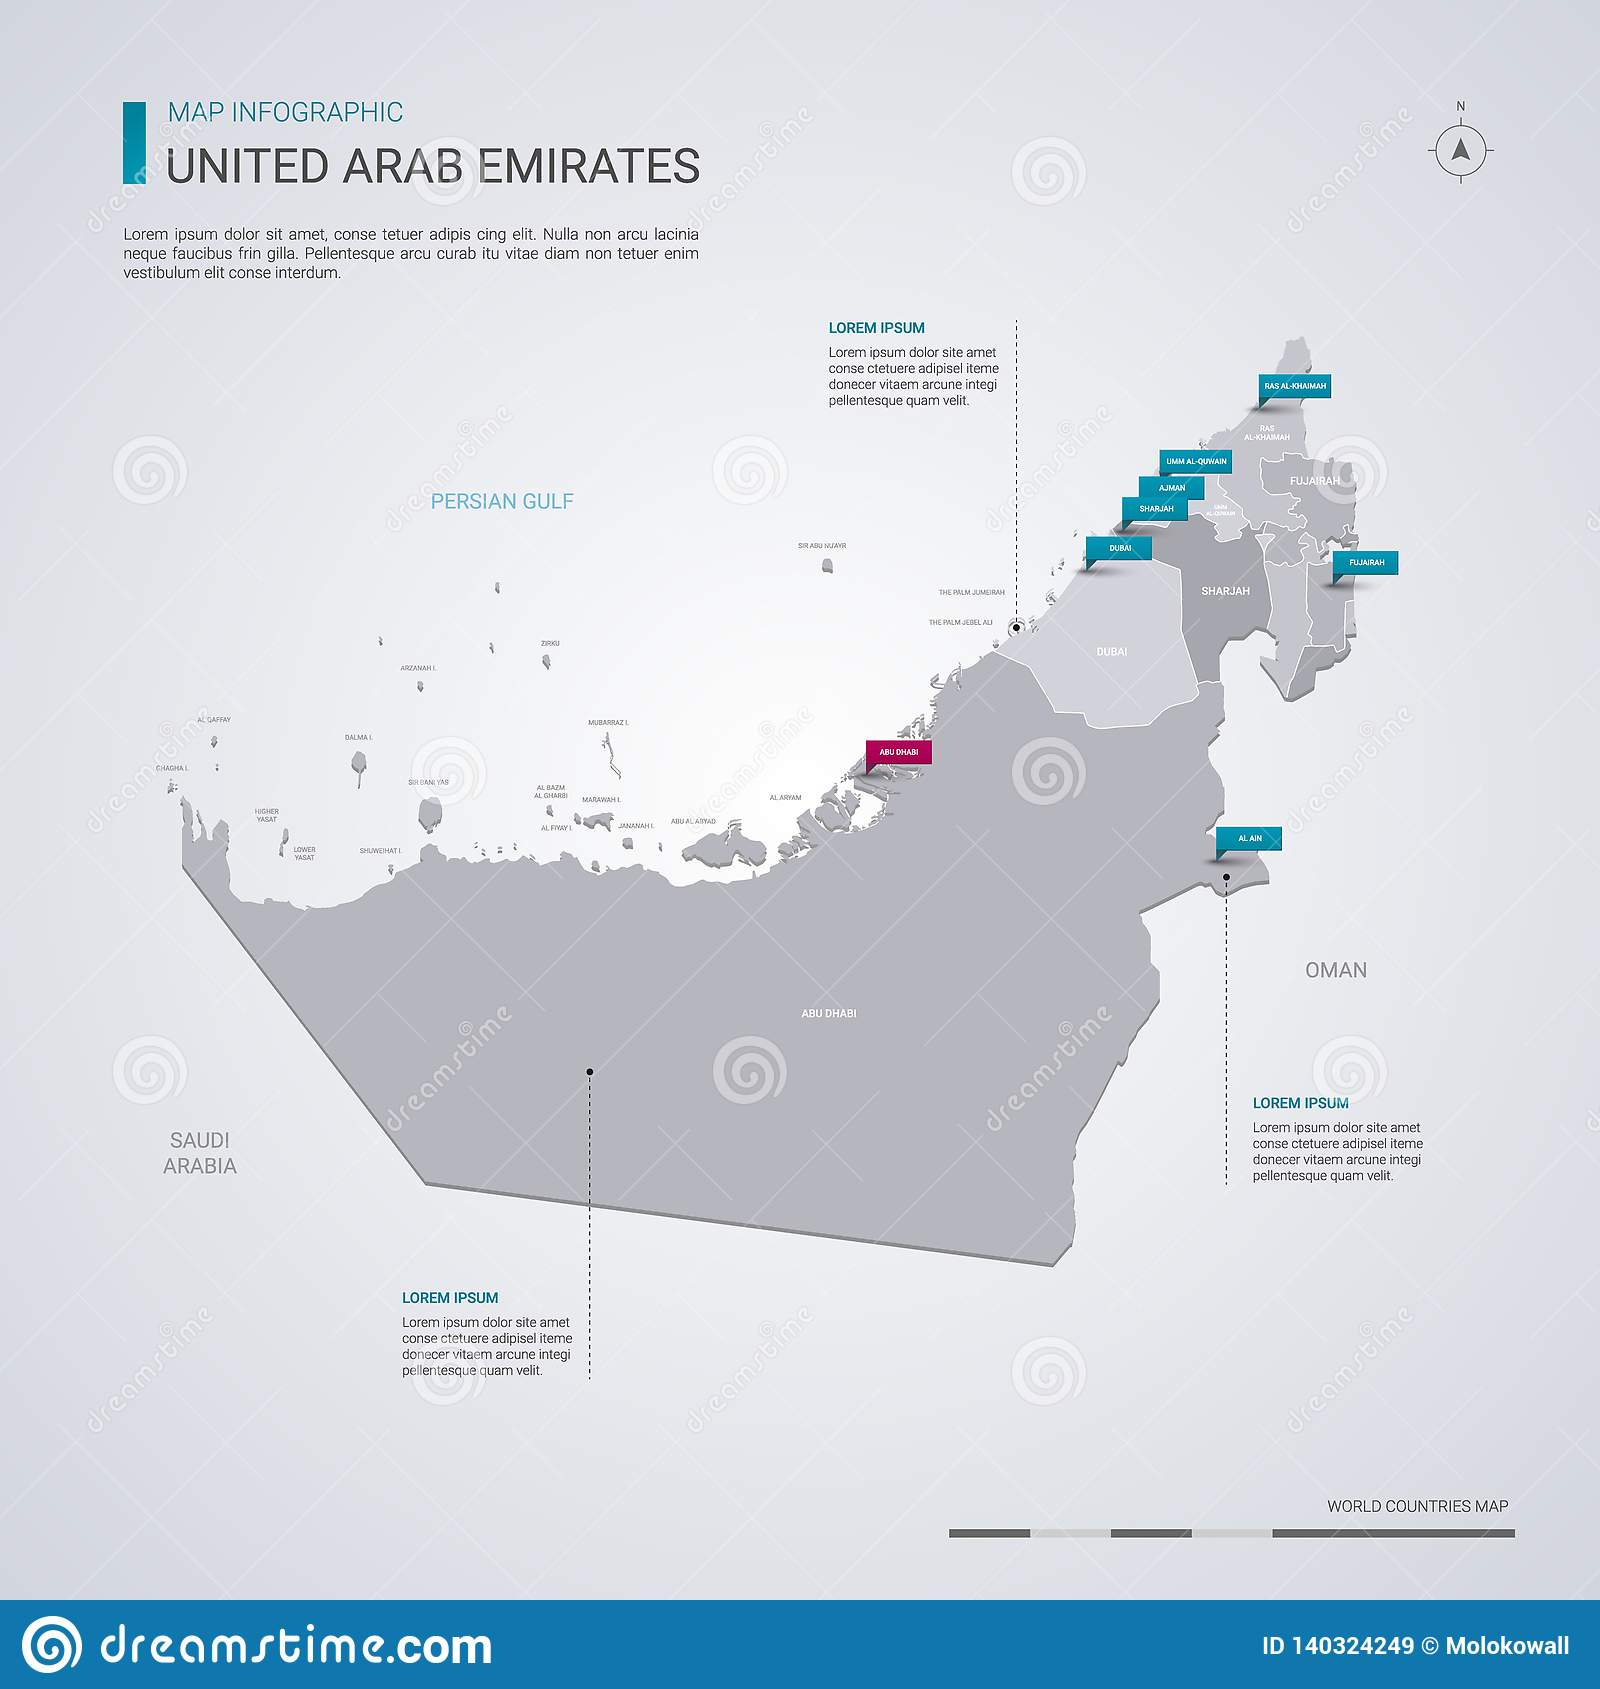 United Arab Emirates Vector Map With Infographic Elements